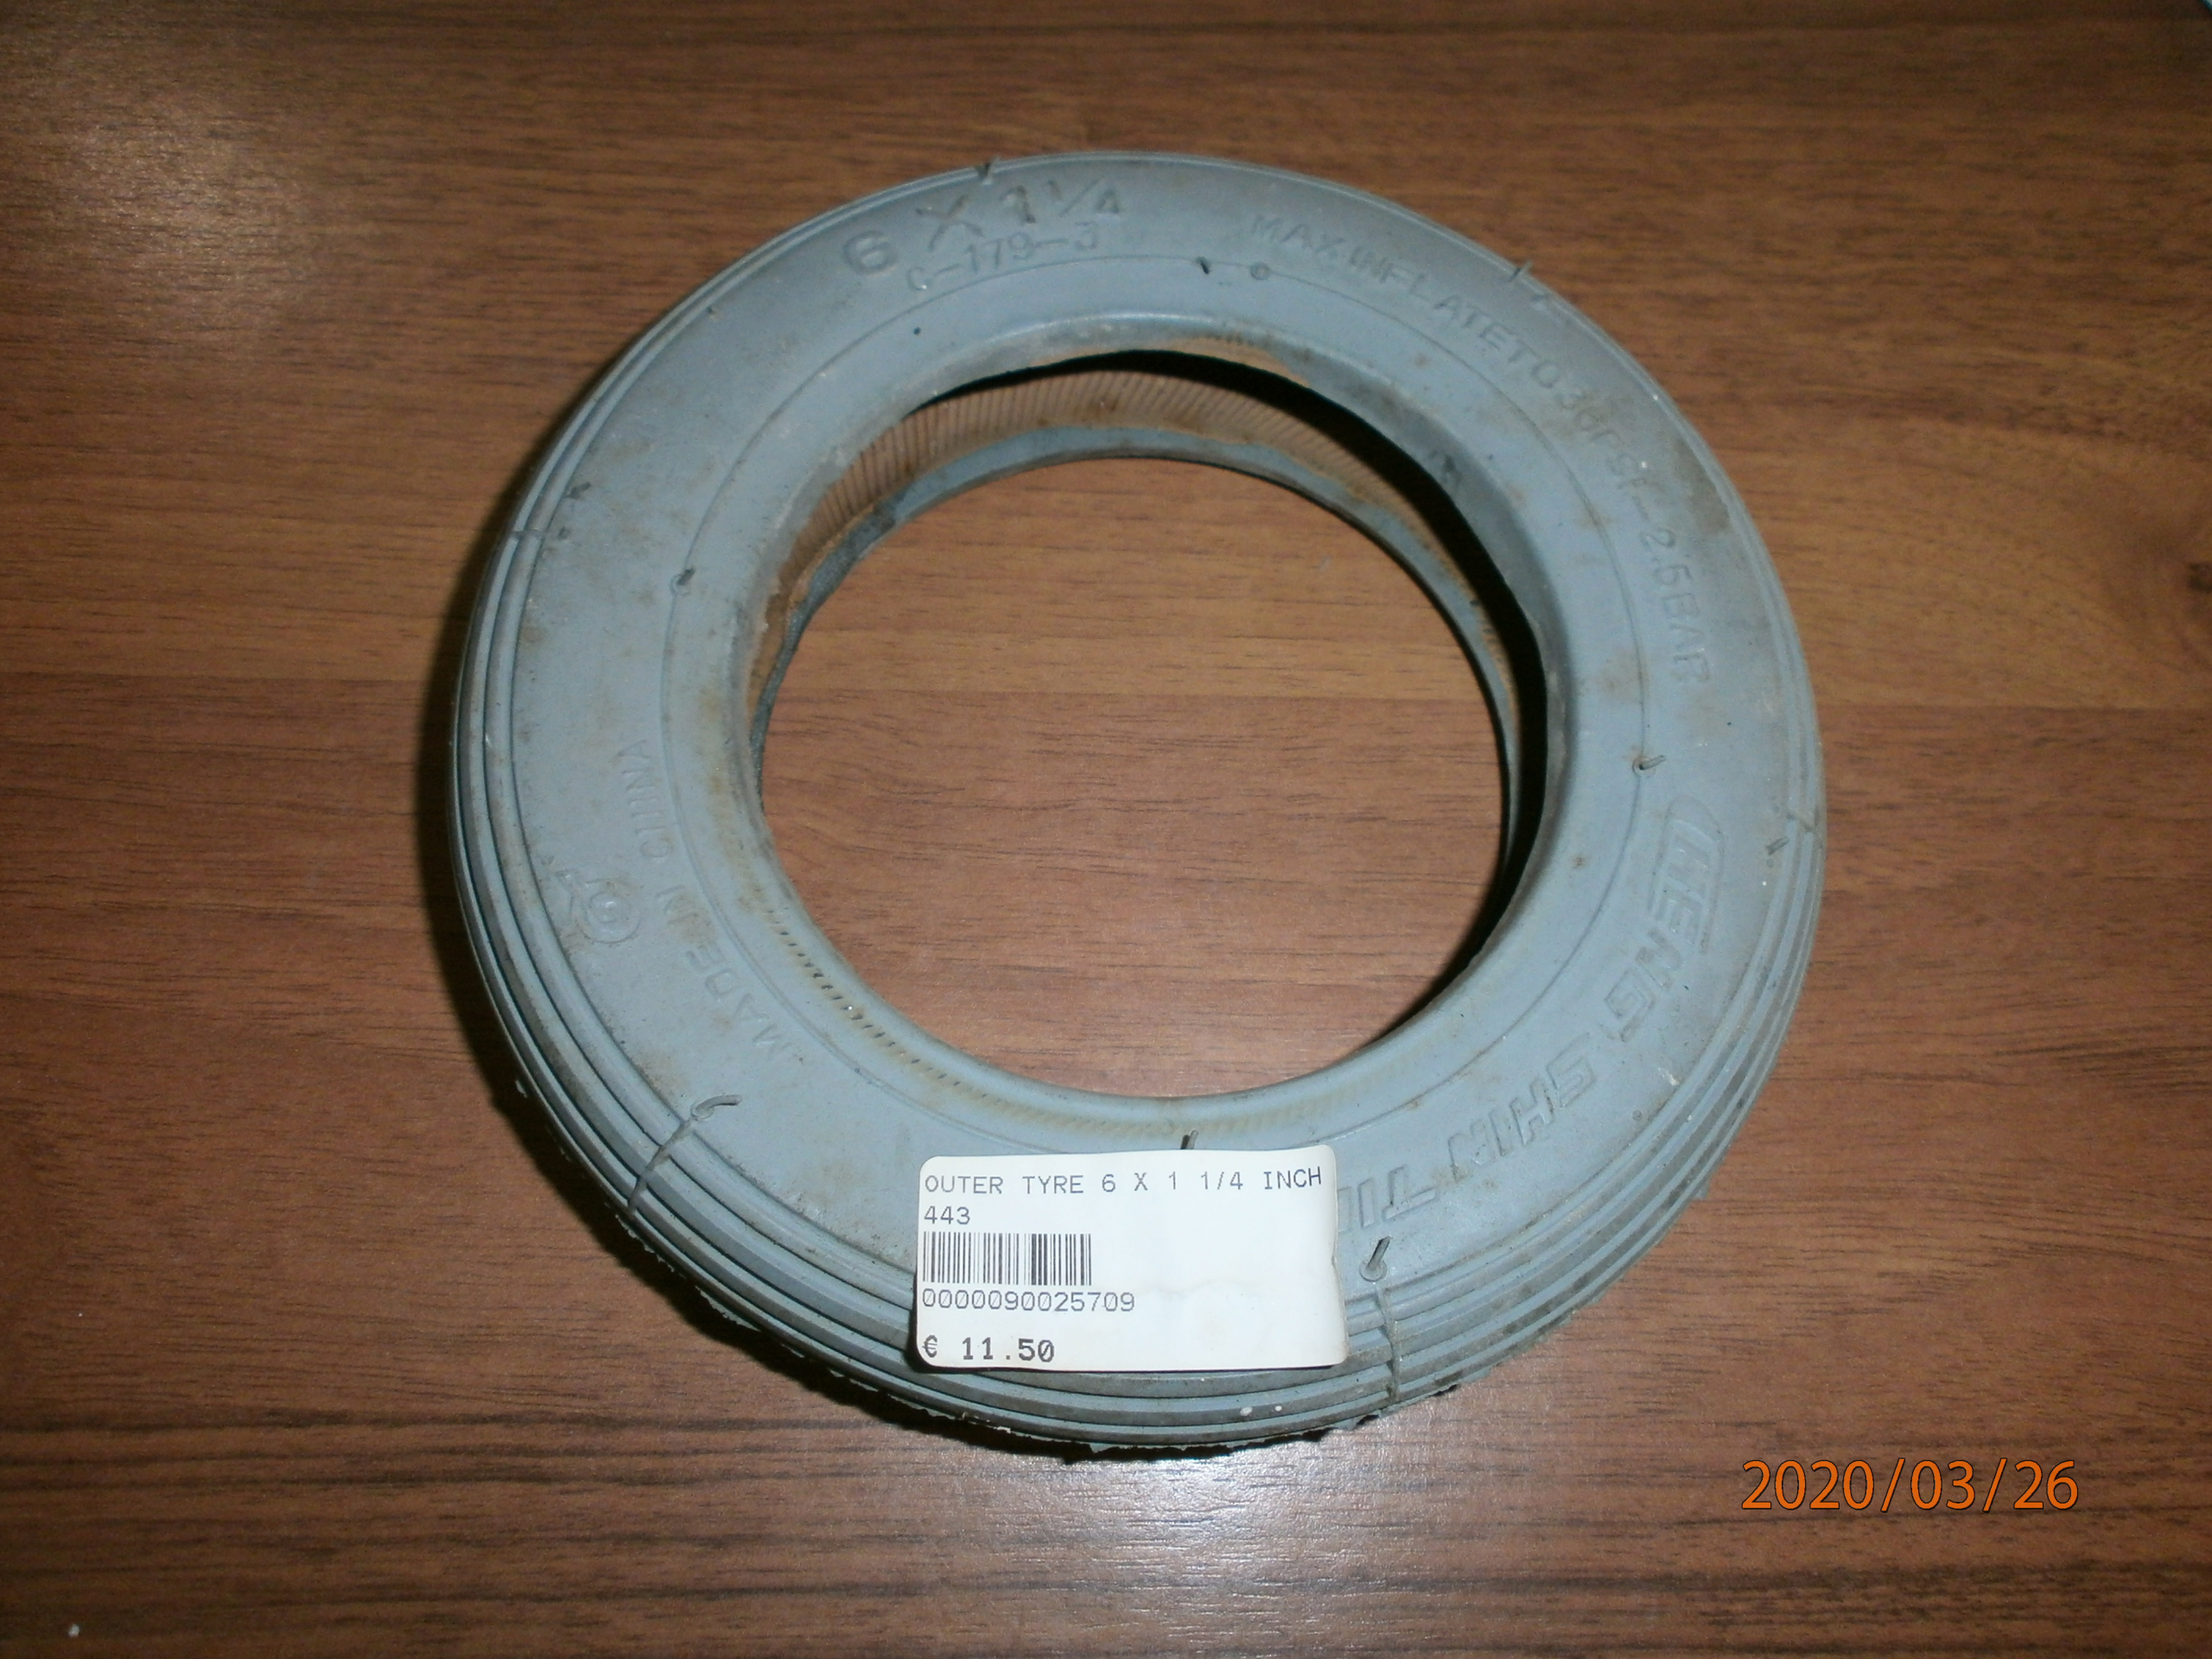 TYRE OUTER 6 X 1 1/4 INCH